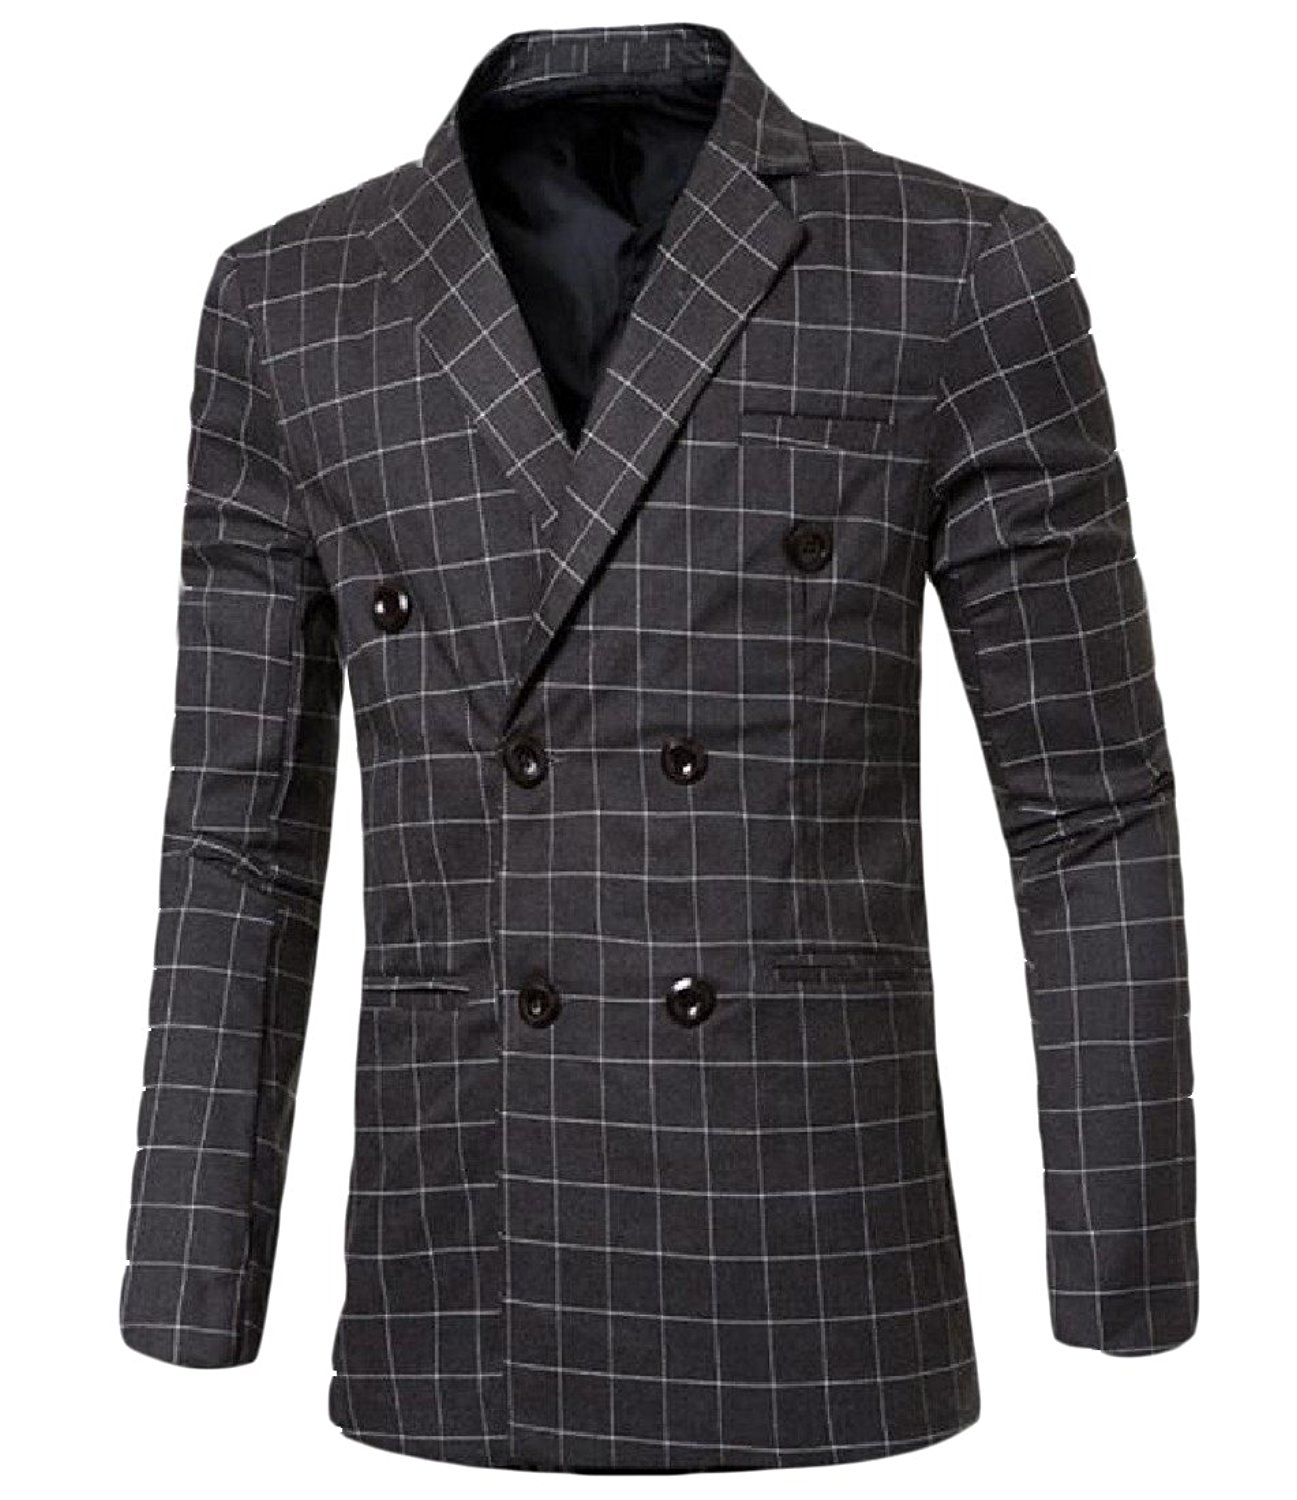 Comfy Men's Trim-Fit Plaid Double-breasted Soft Blazer Jacket Suit